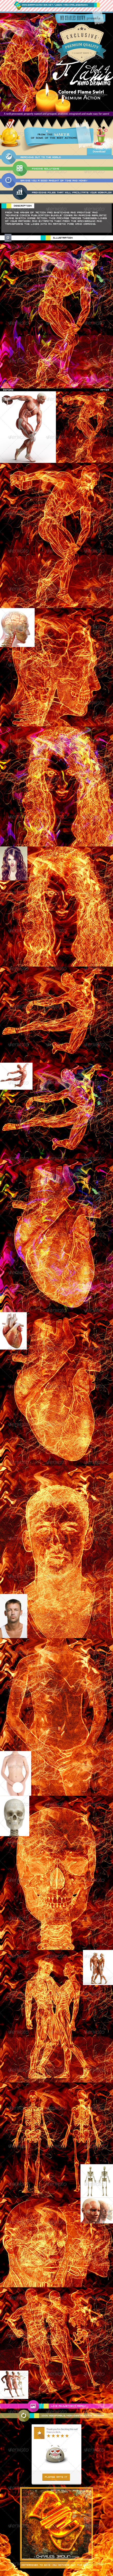 GraphicRiver Advance Flame Hand Drawing 4 7523605